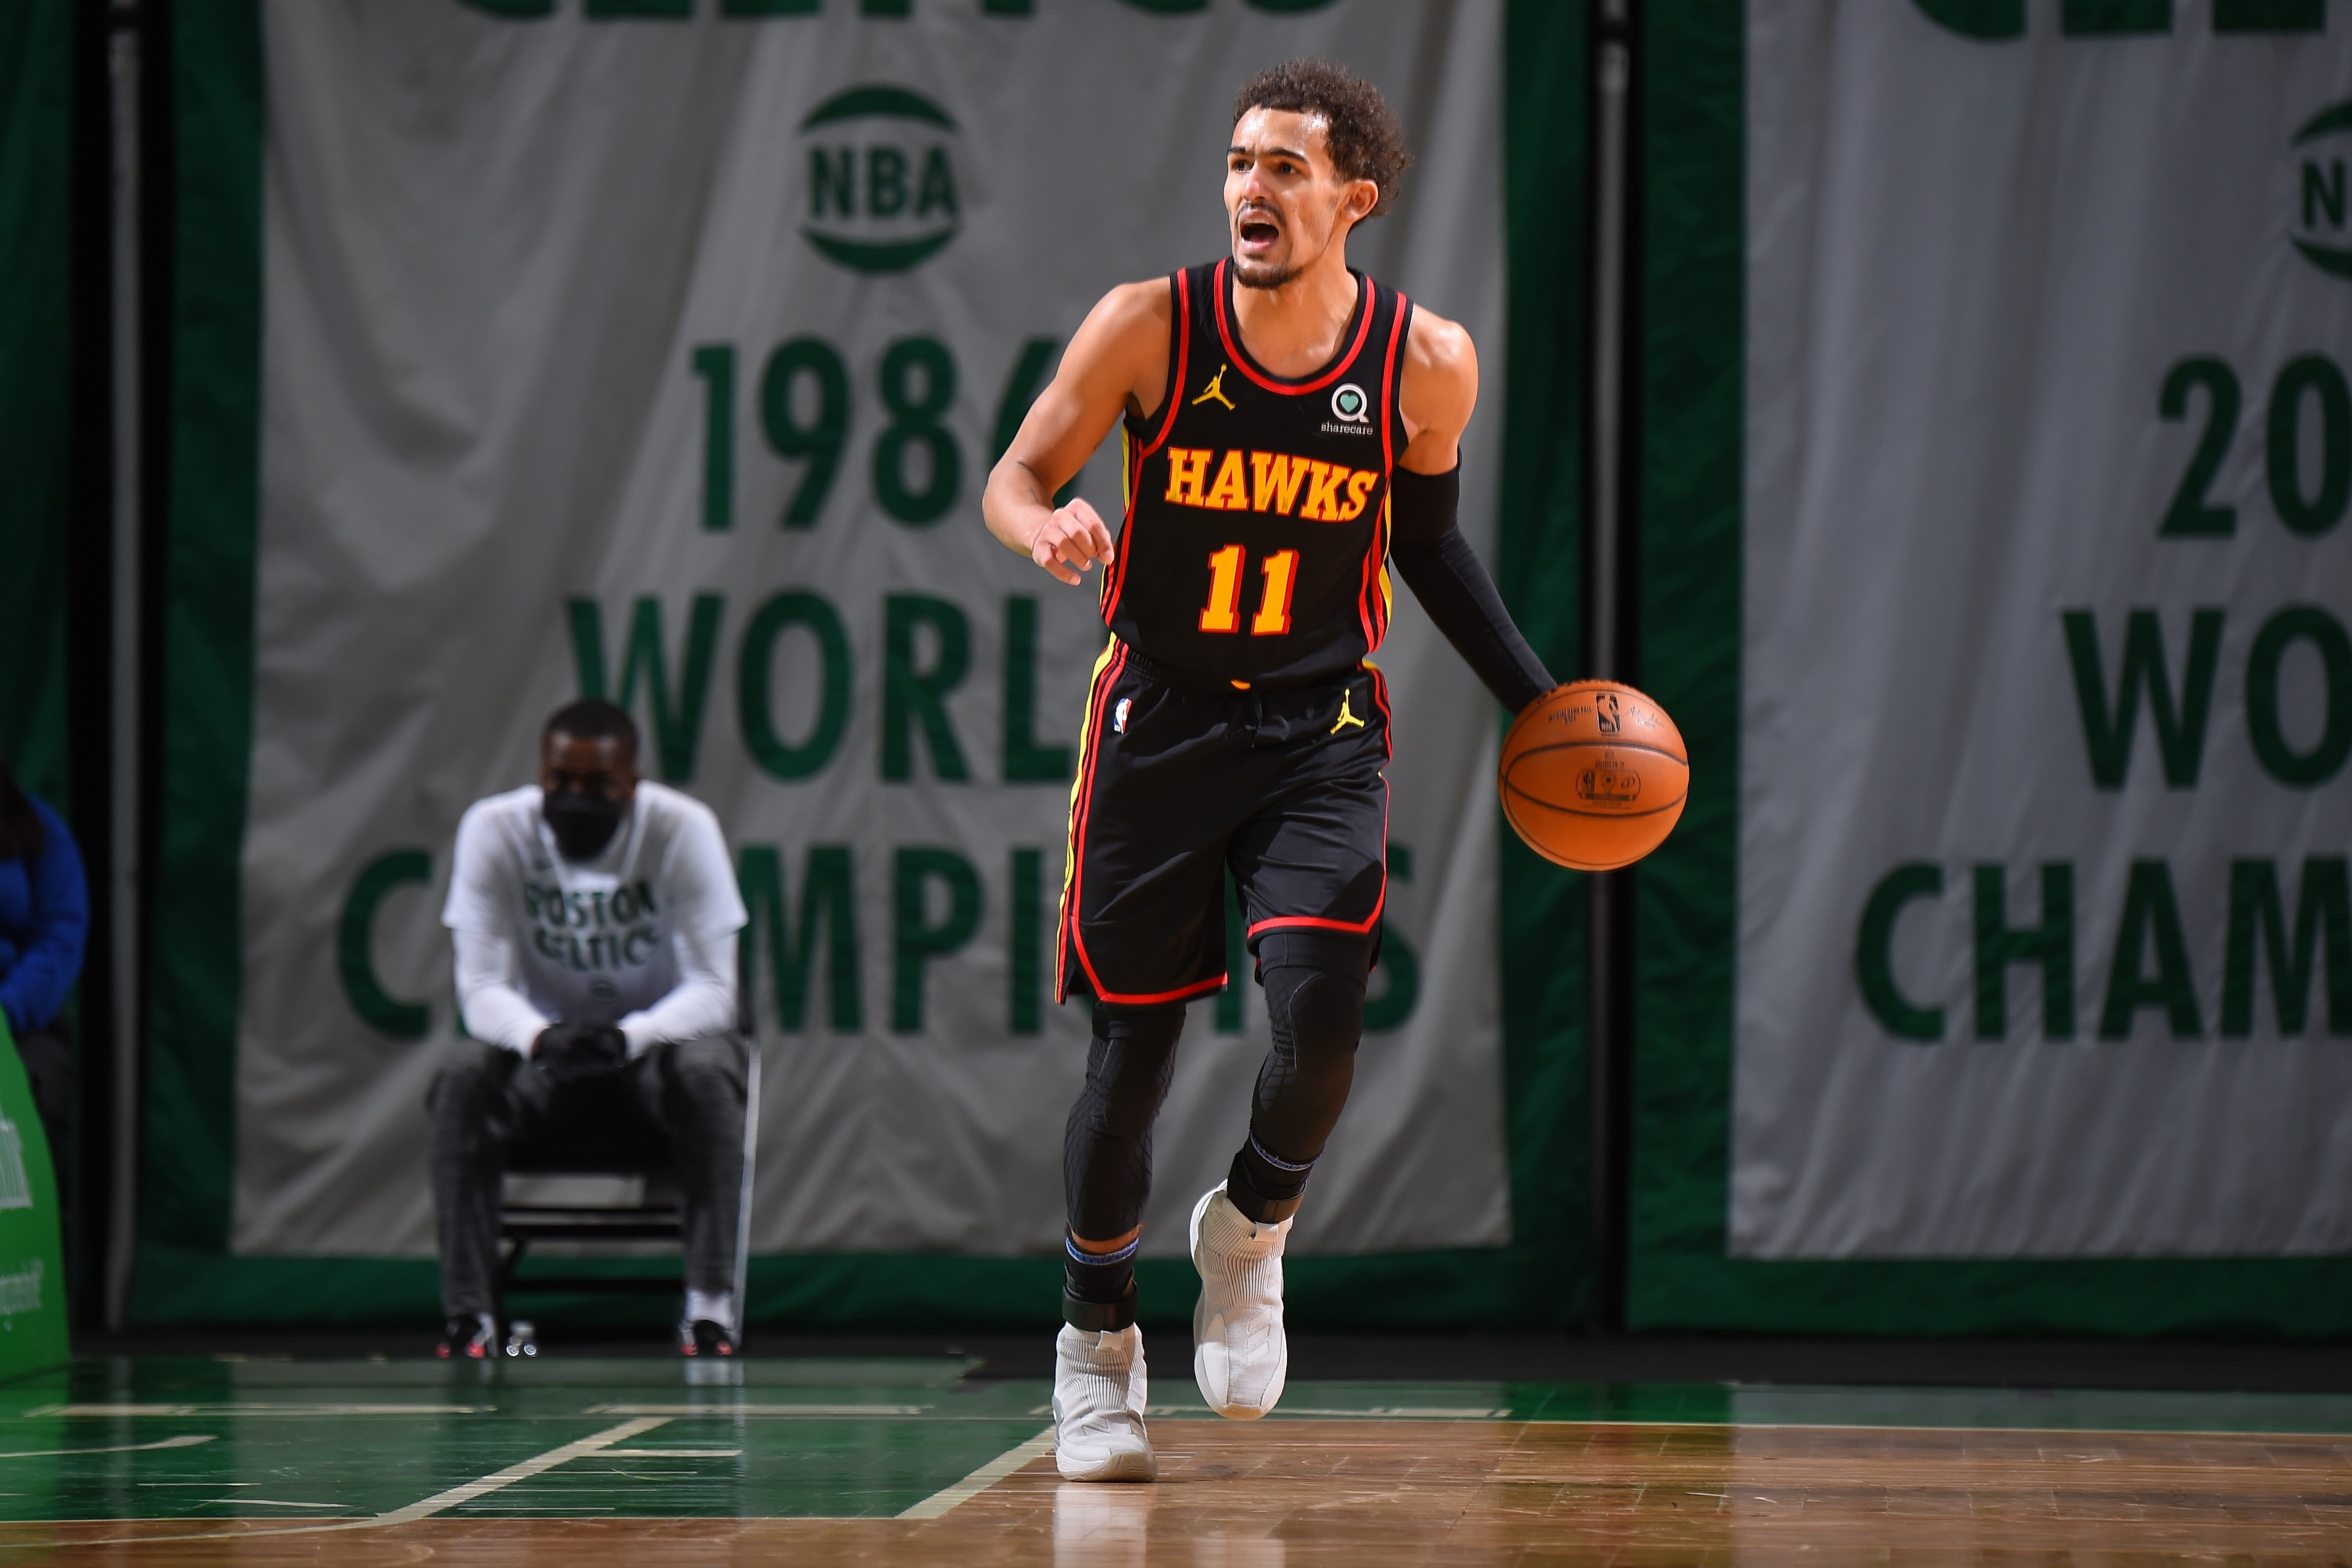 Trae led the way with 40 points and 8 assists.(Brian Babineau/NBAE via Getty Images)